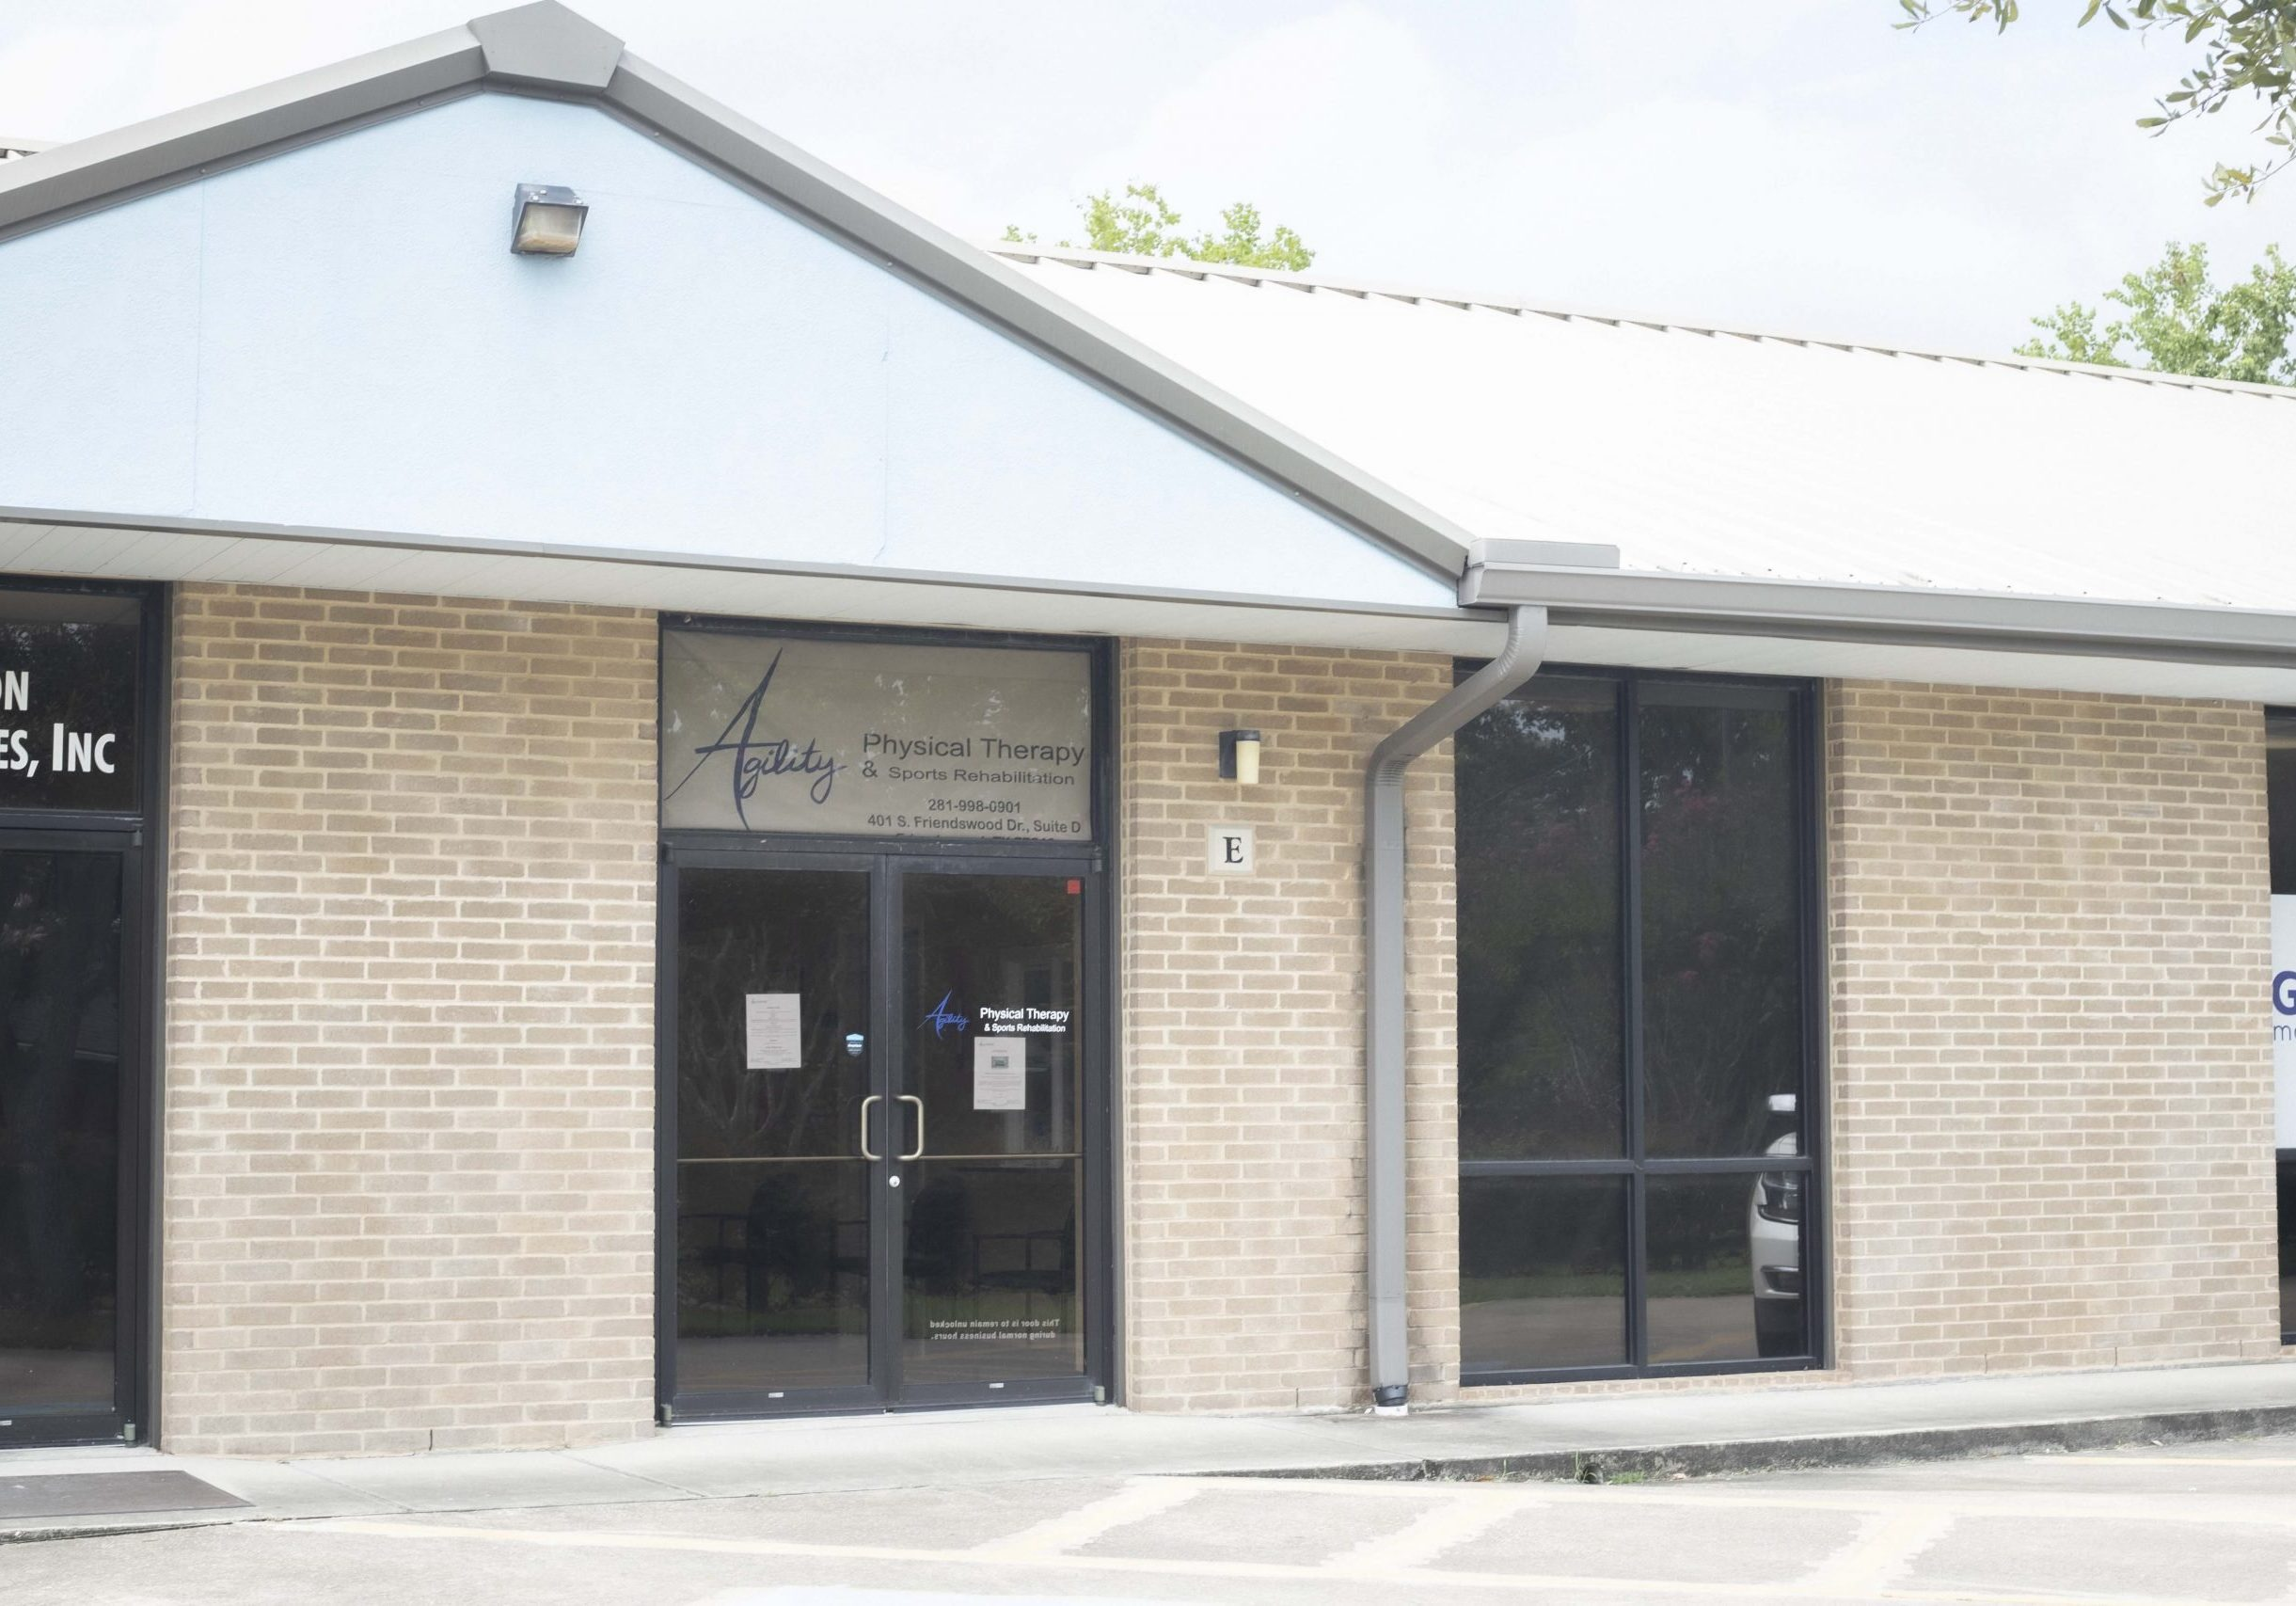 Agilty Physical Therapy Friendswood